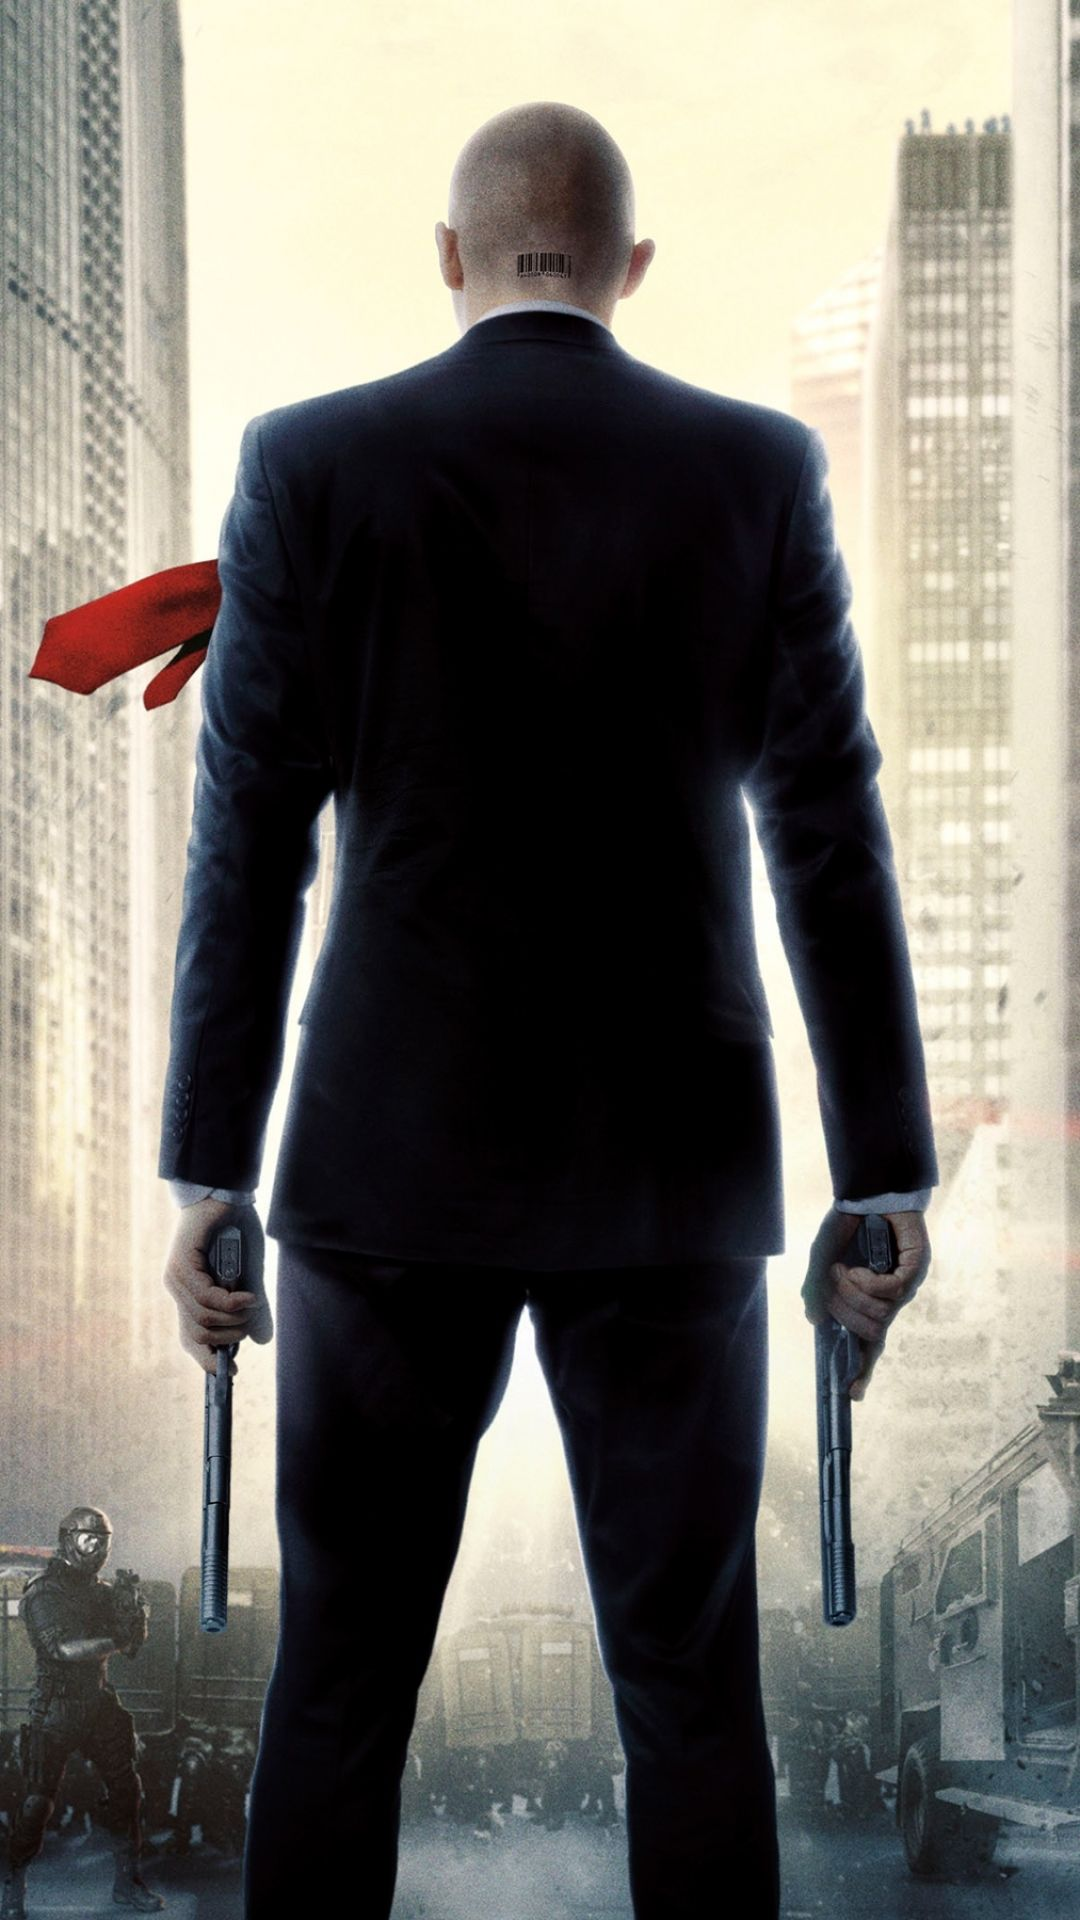 1080x1920 Movie/Hitman: Agent 47 (1080x1920) Wallpaper ID: 578988 - Mobile Abyss